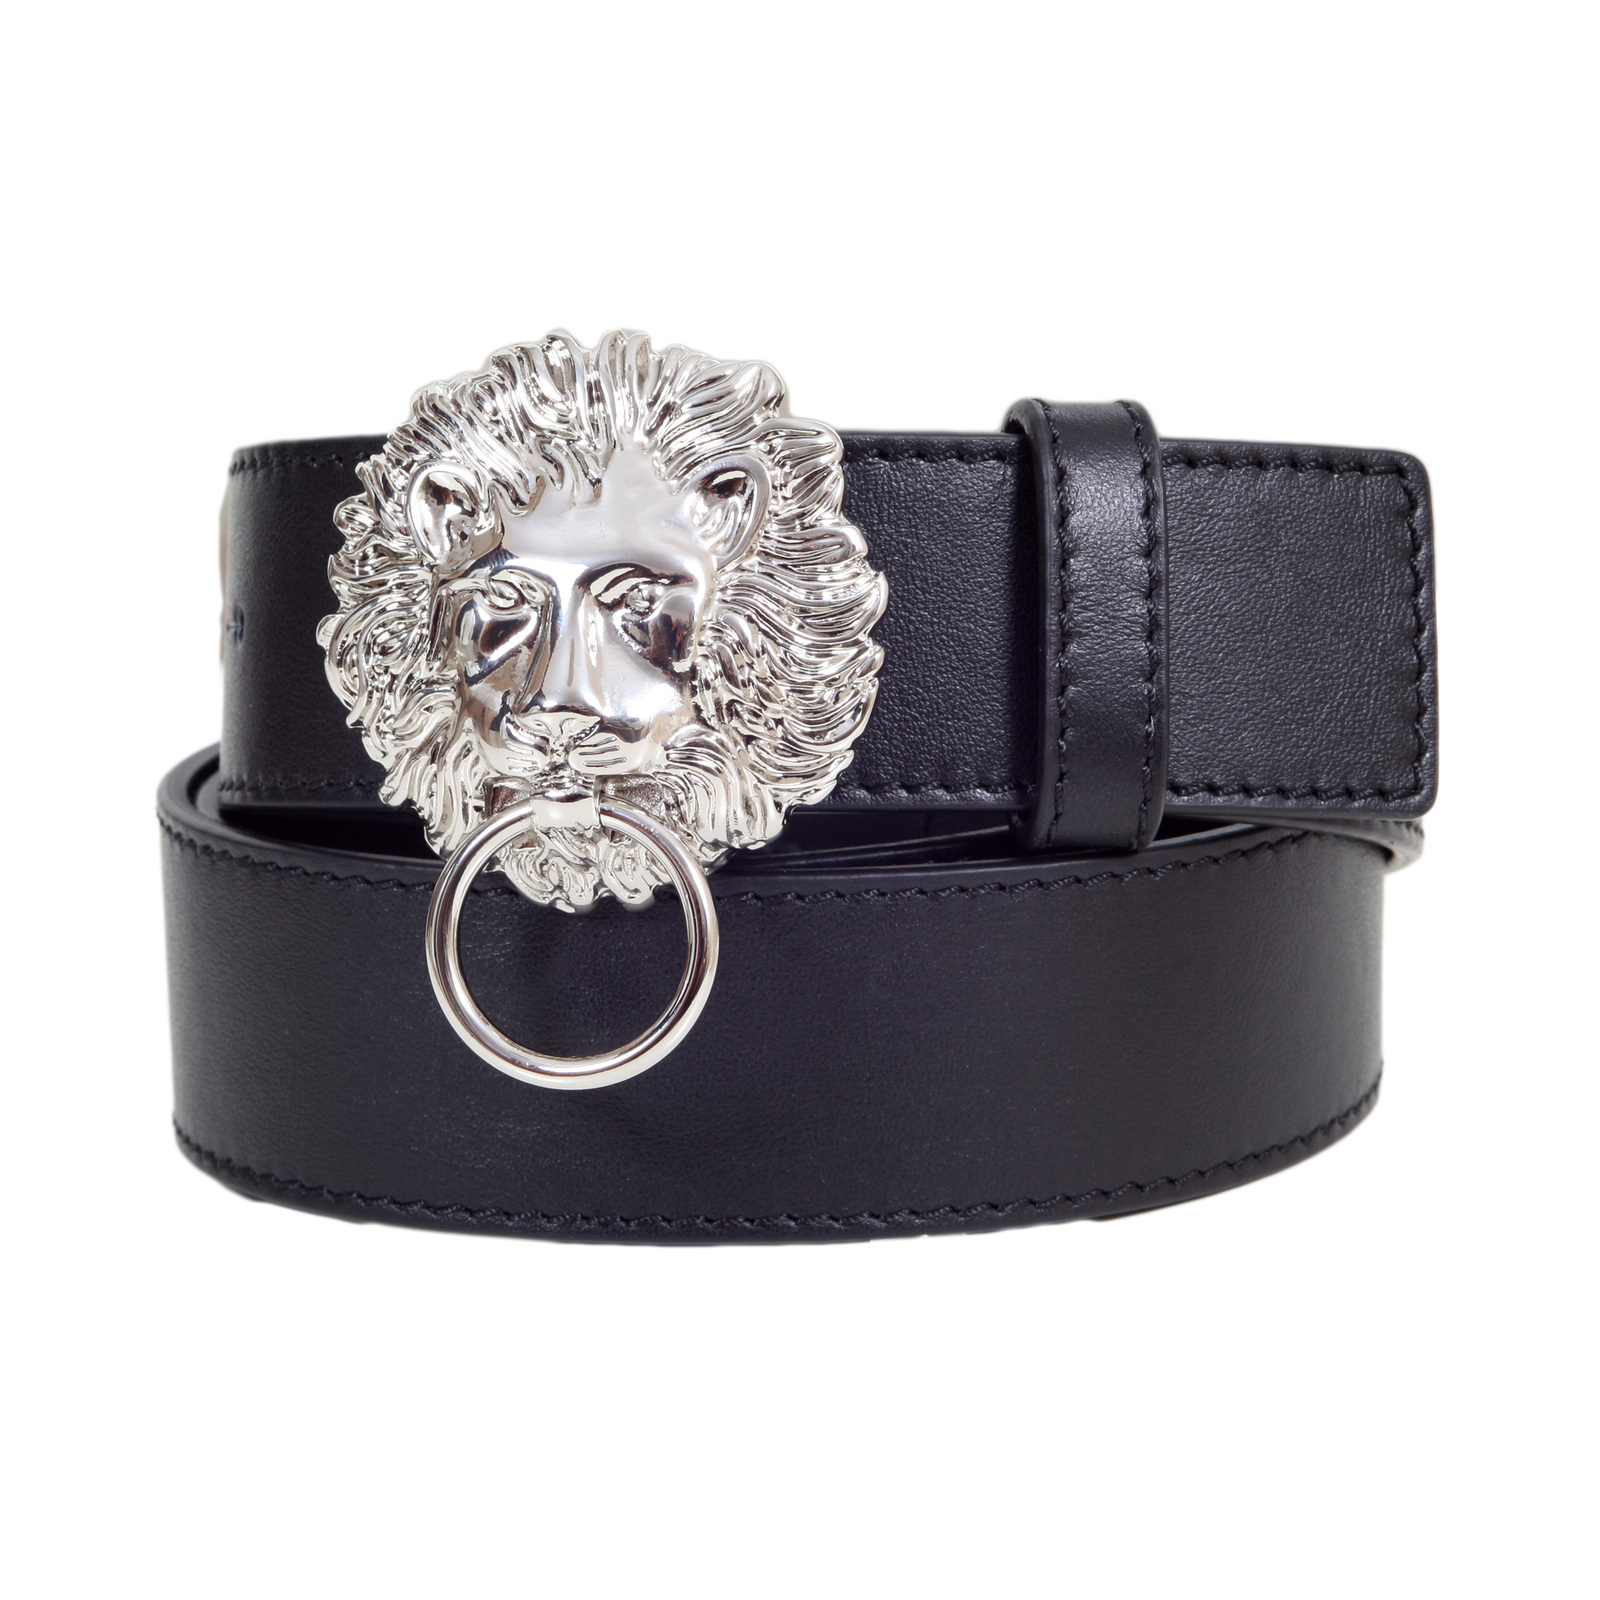 42b486cf09a ... order versace versus black leather belt for men fcu0048 fv10 with lion  head and ring silver